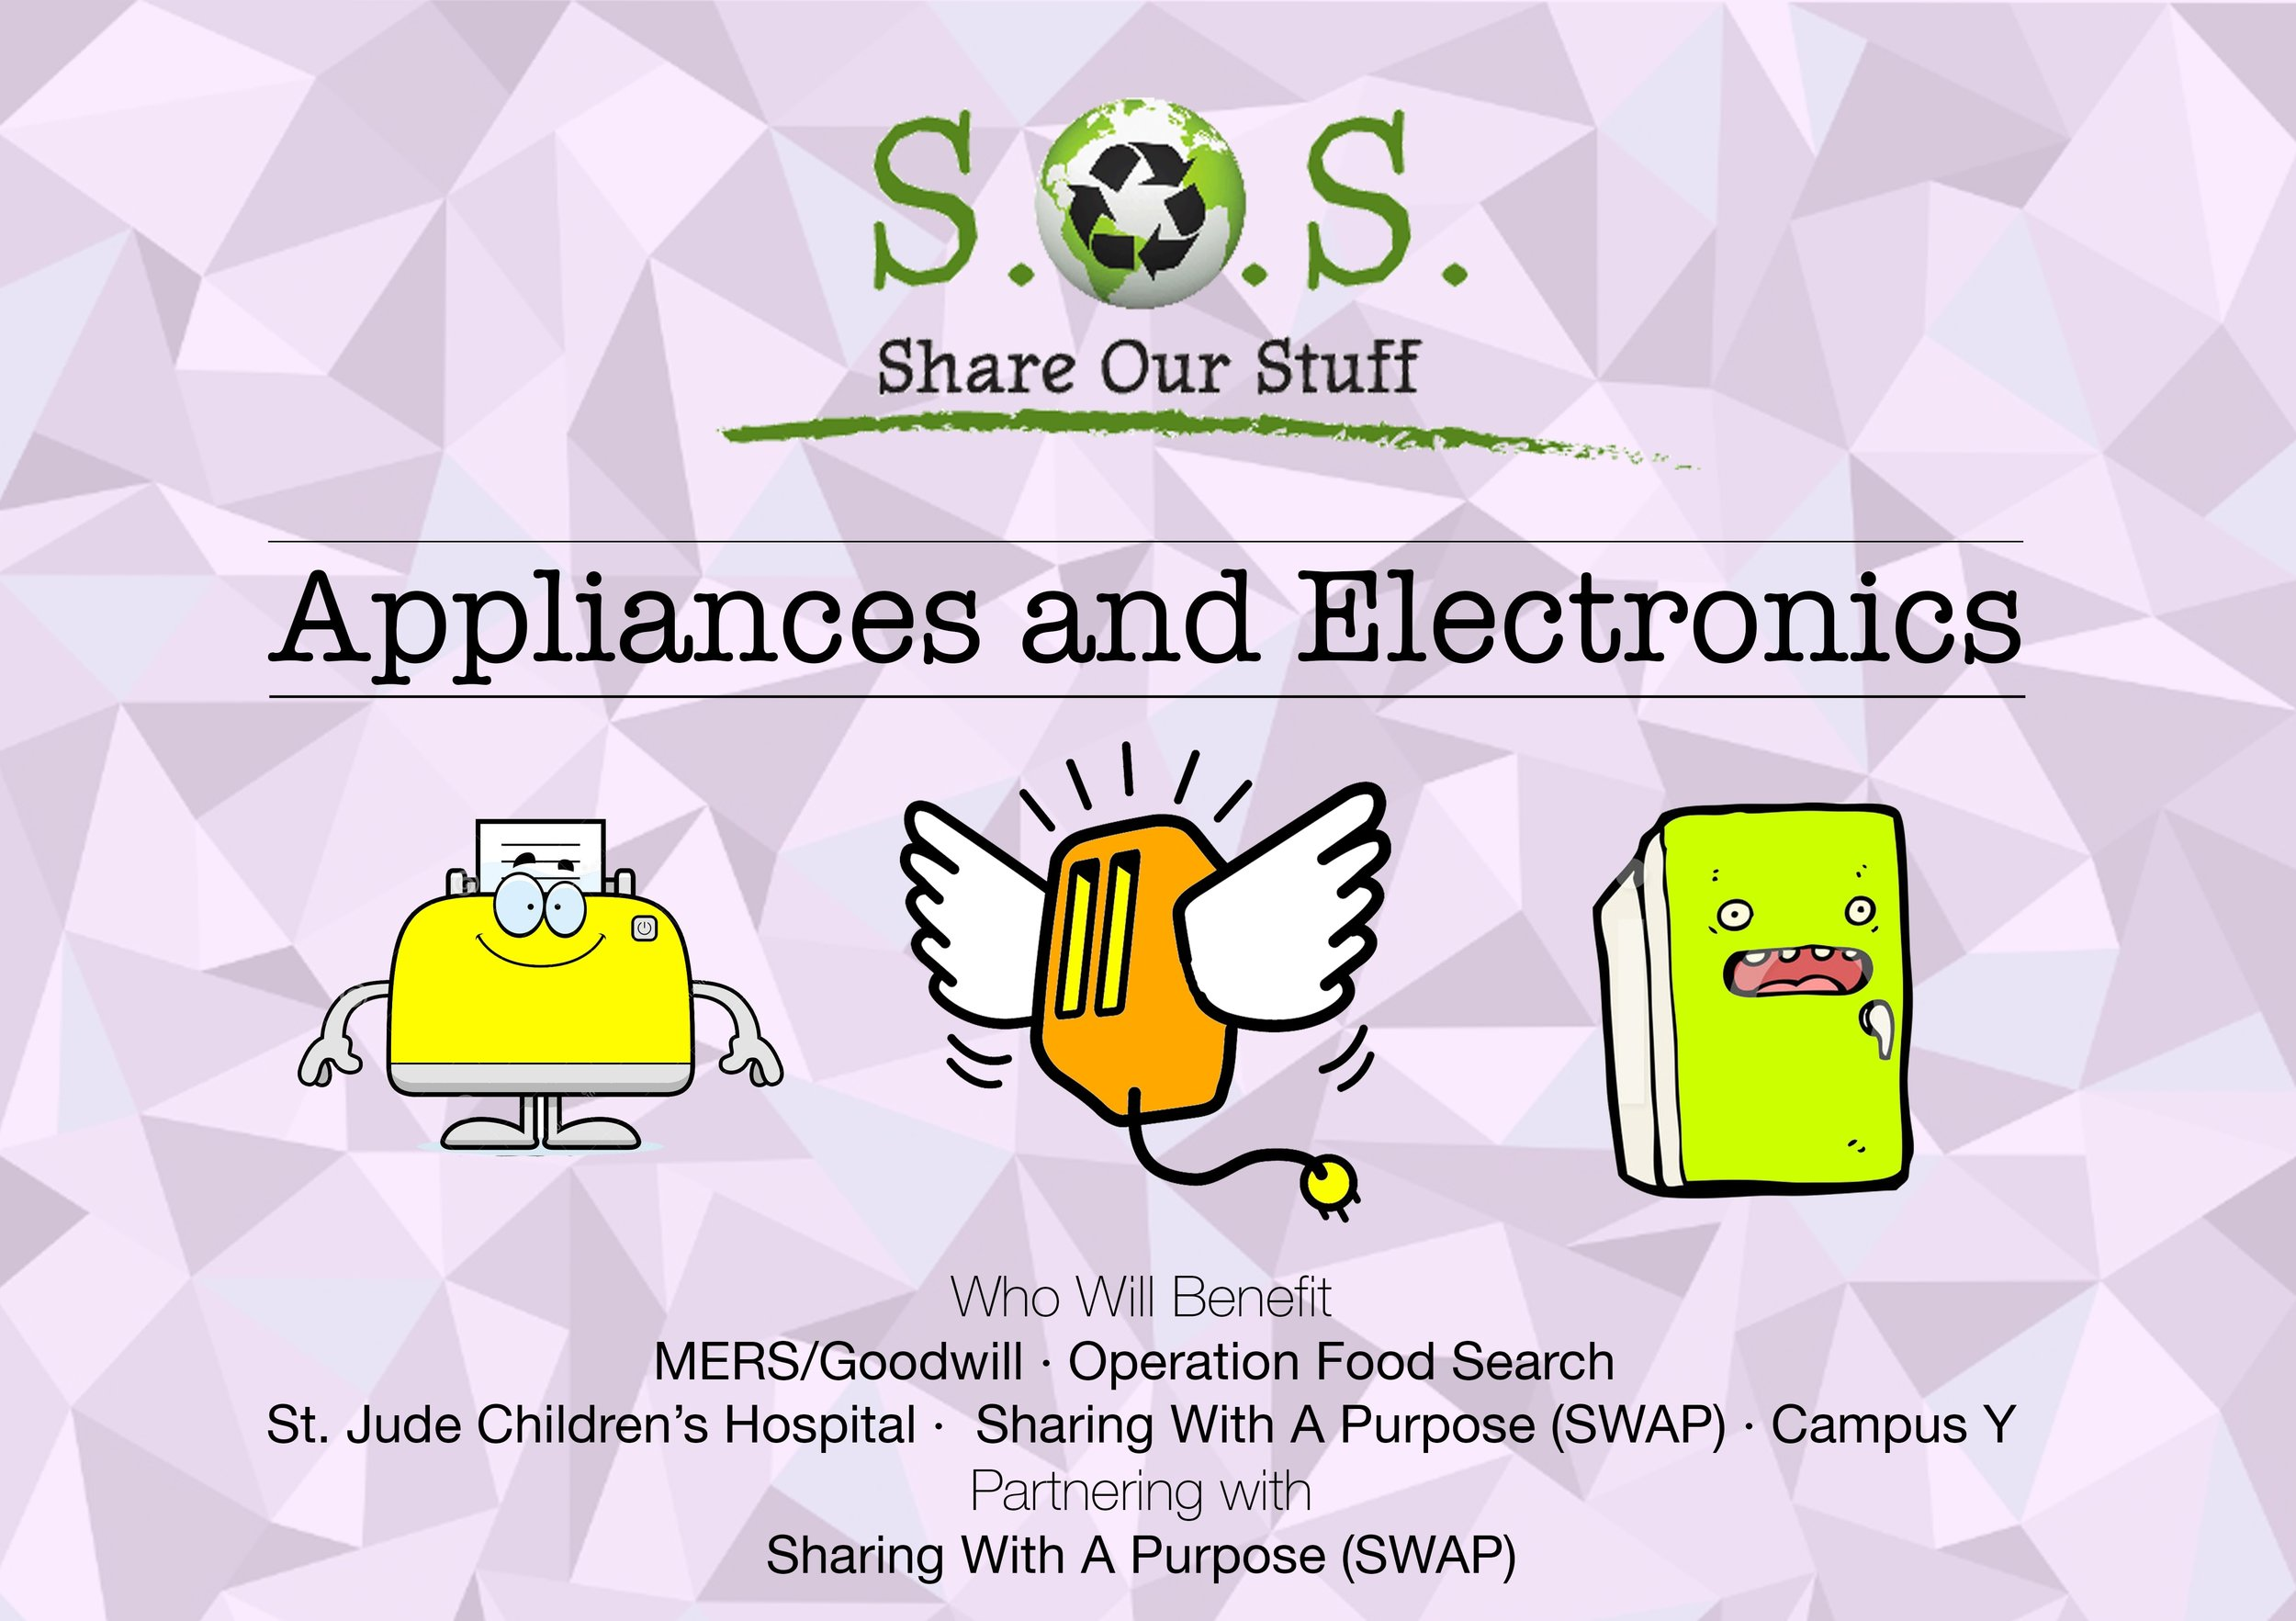 appliances_and_elect_5OYAo.jpg